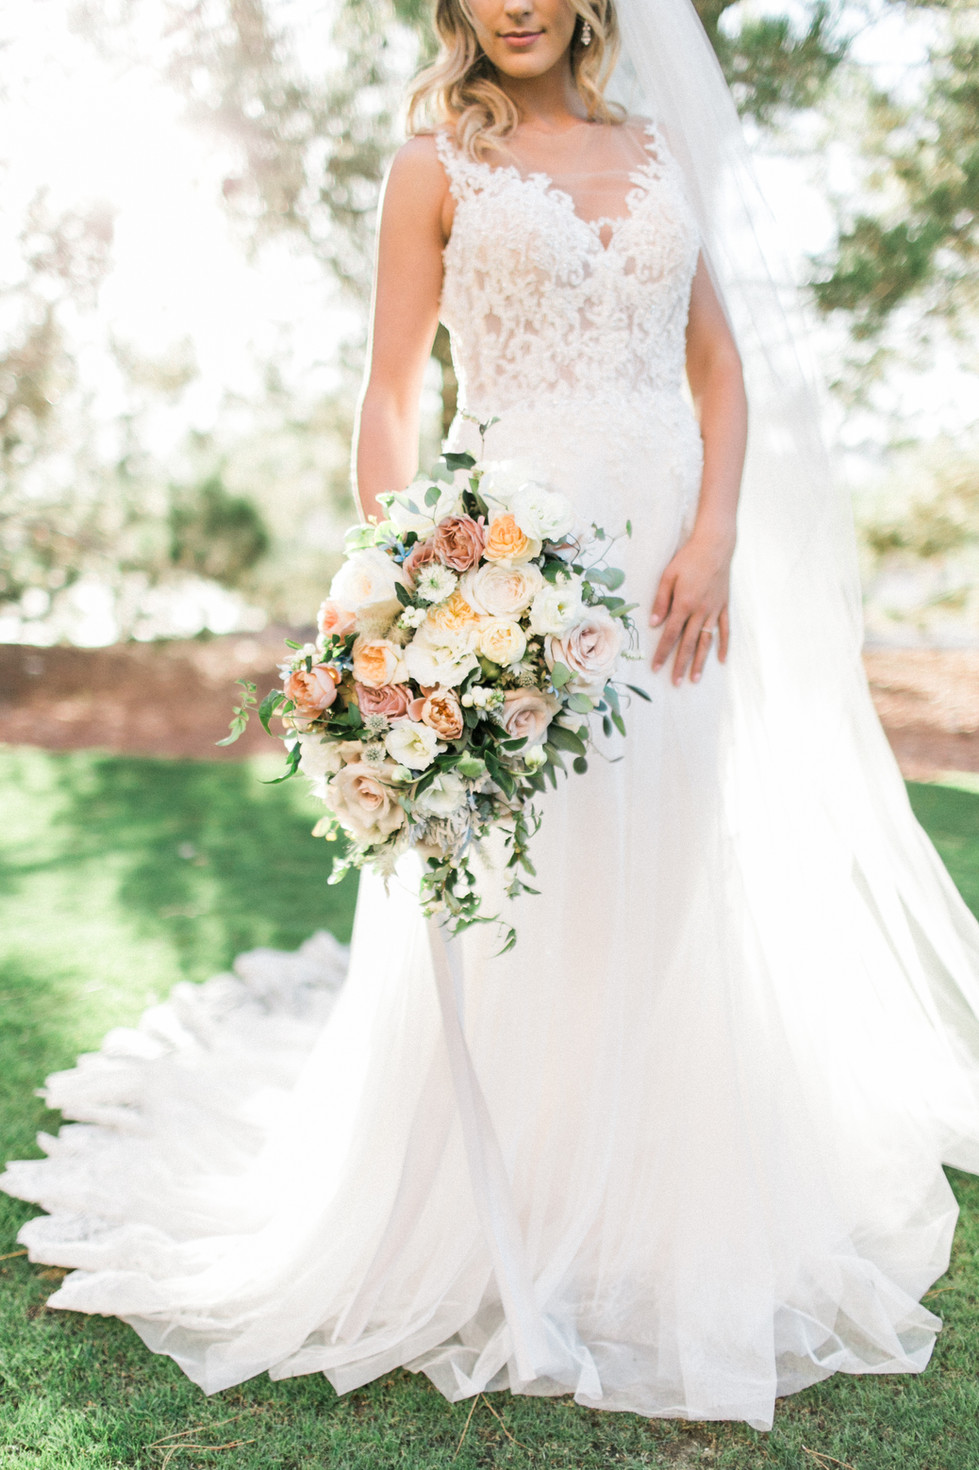 Bridal bouquet with garden roses, hellebores, ranunculus and dahlias in shades of ivory and blush. Photo: Lianna Marie